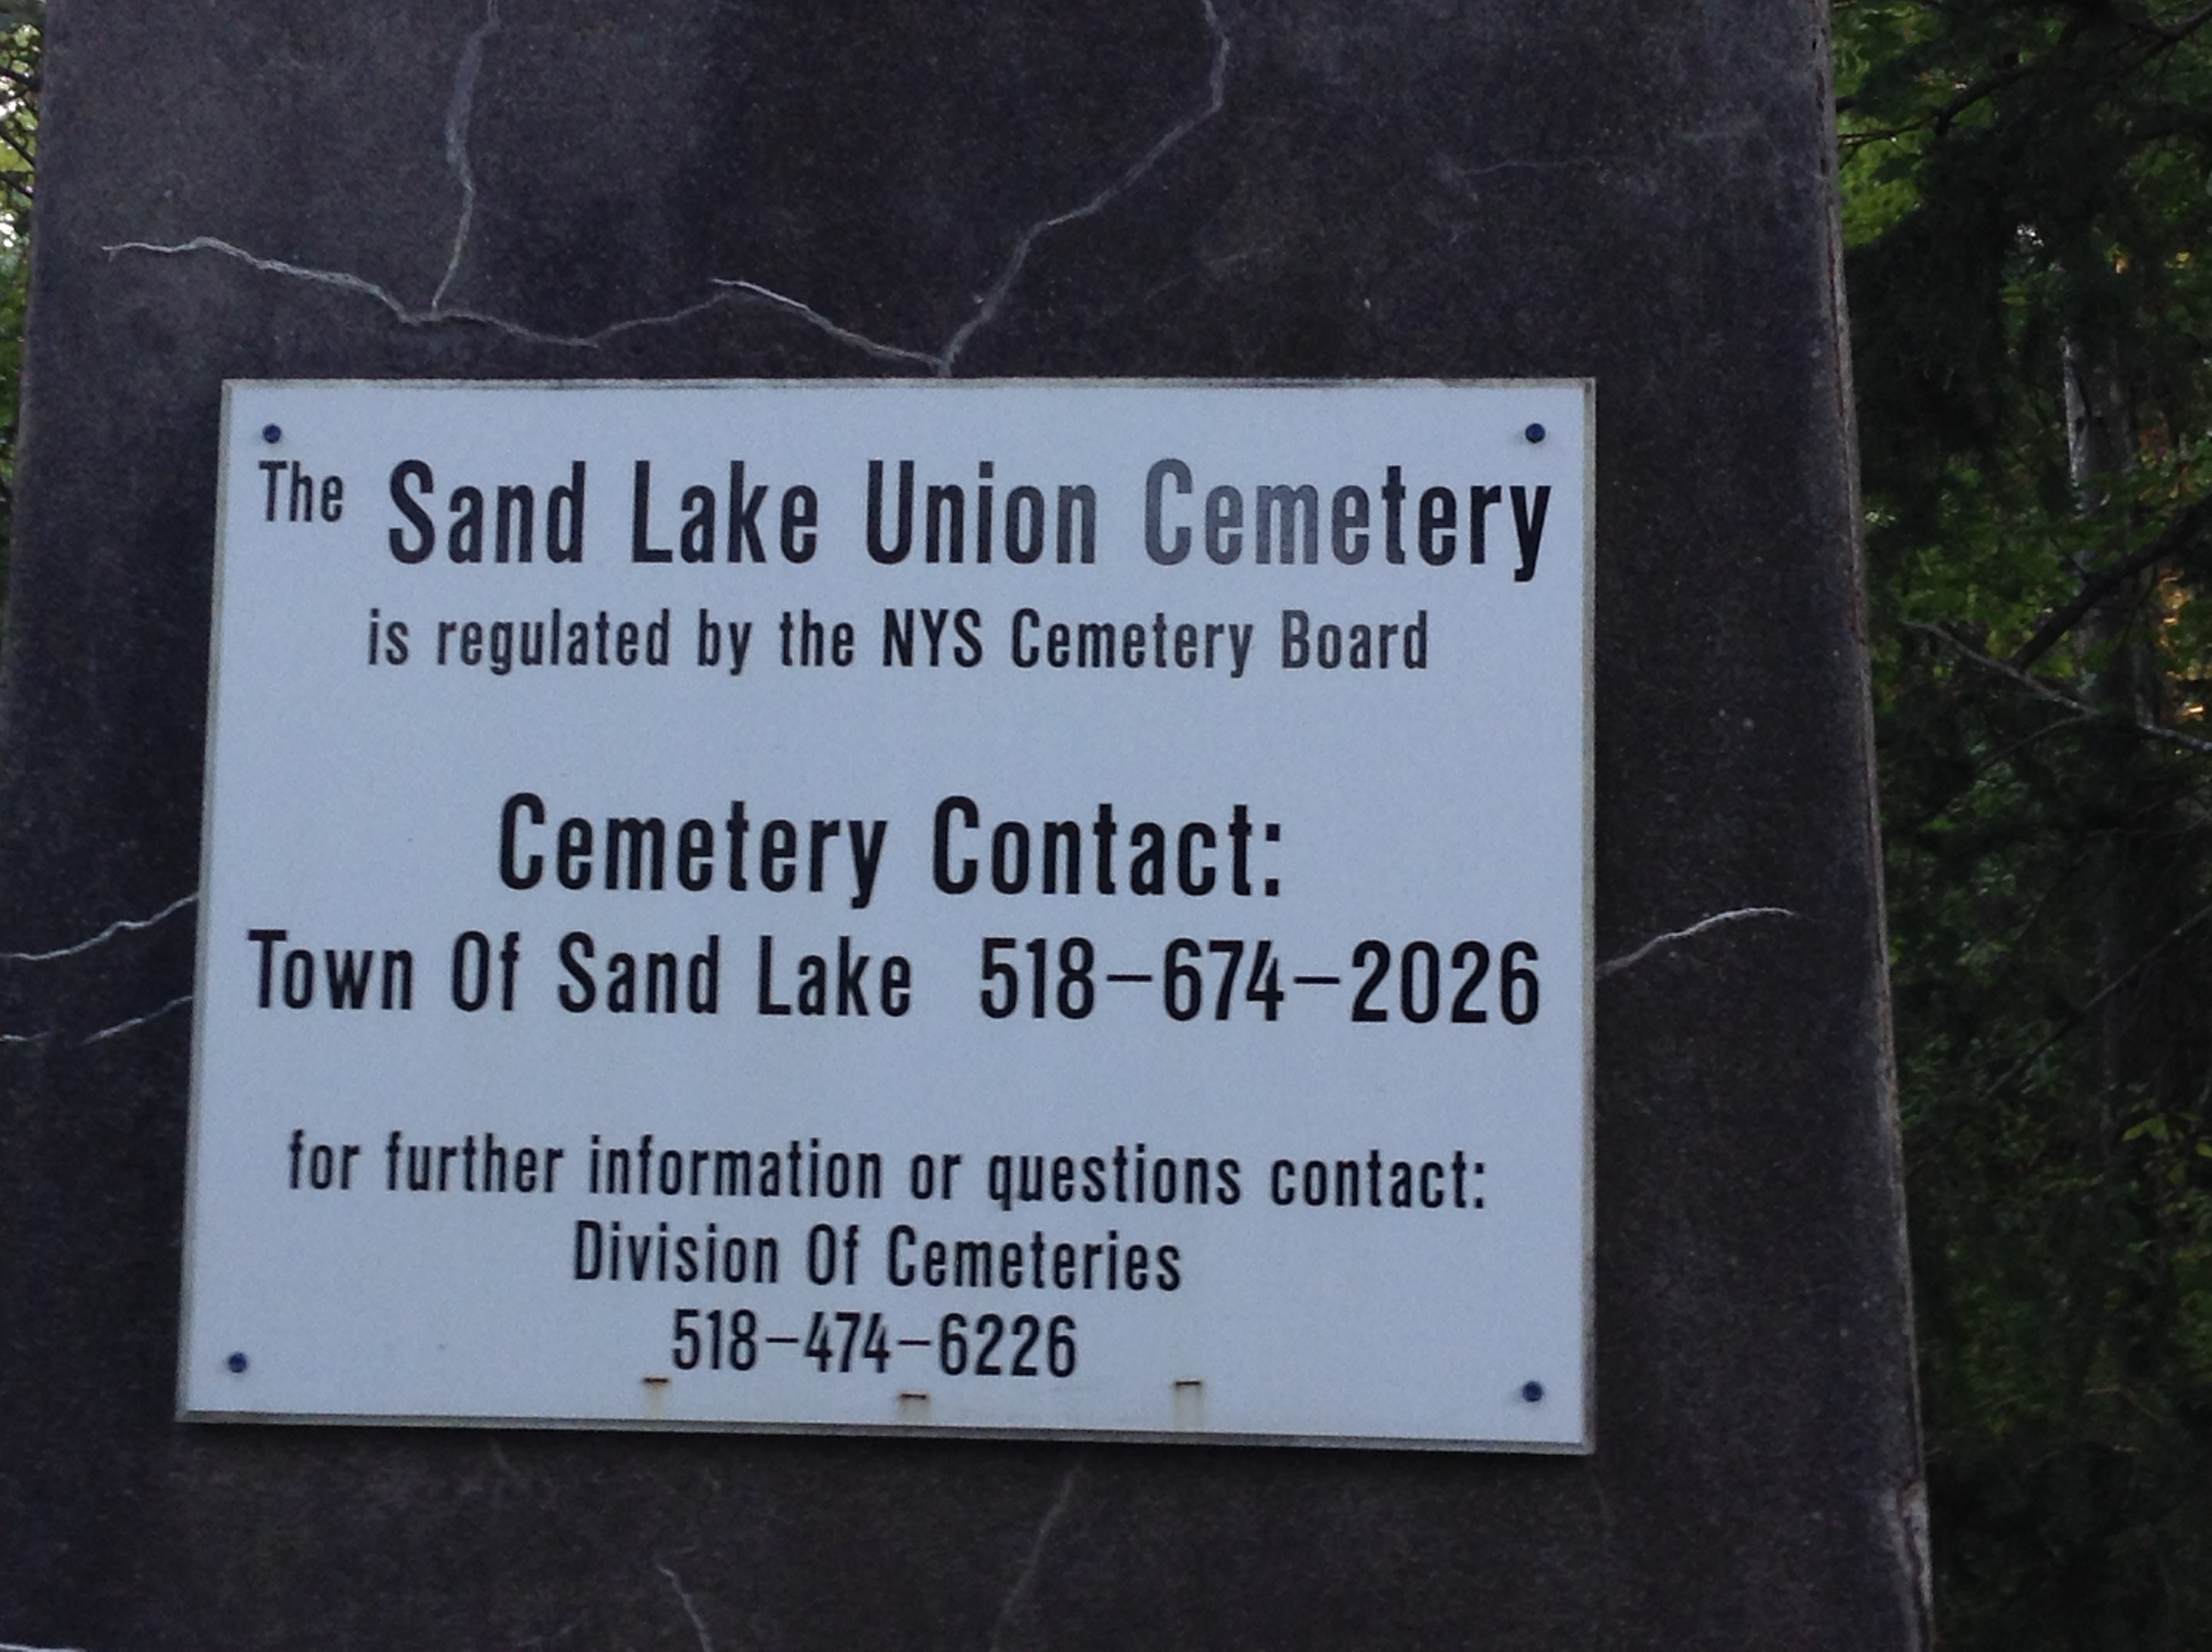 Sand Lake Union Cemetery